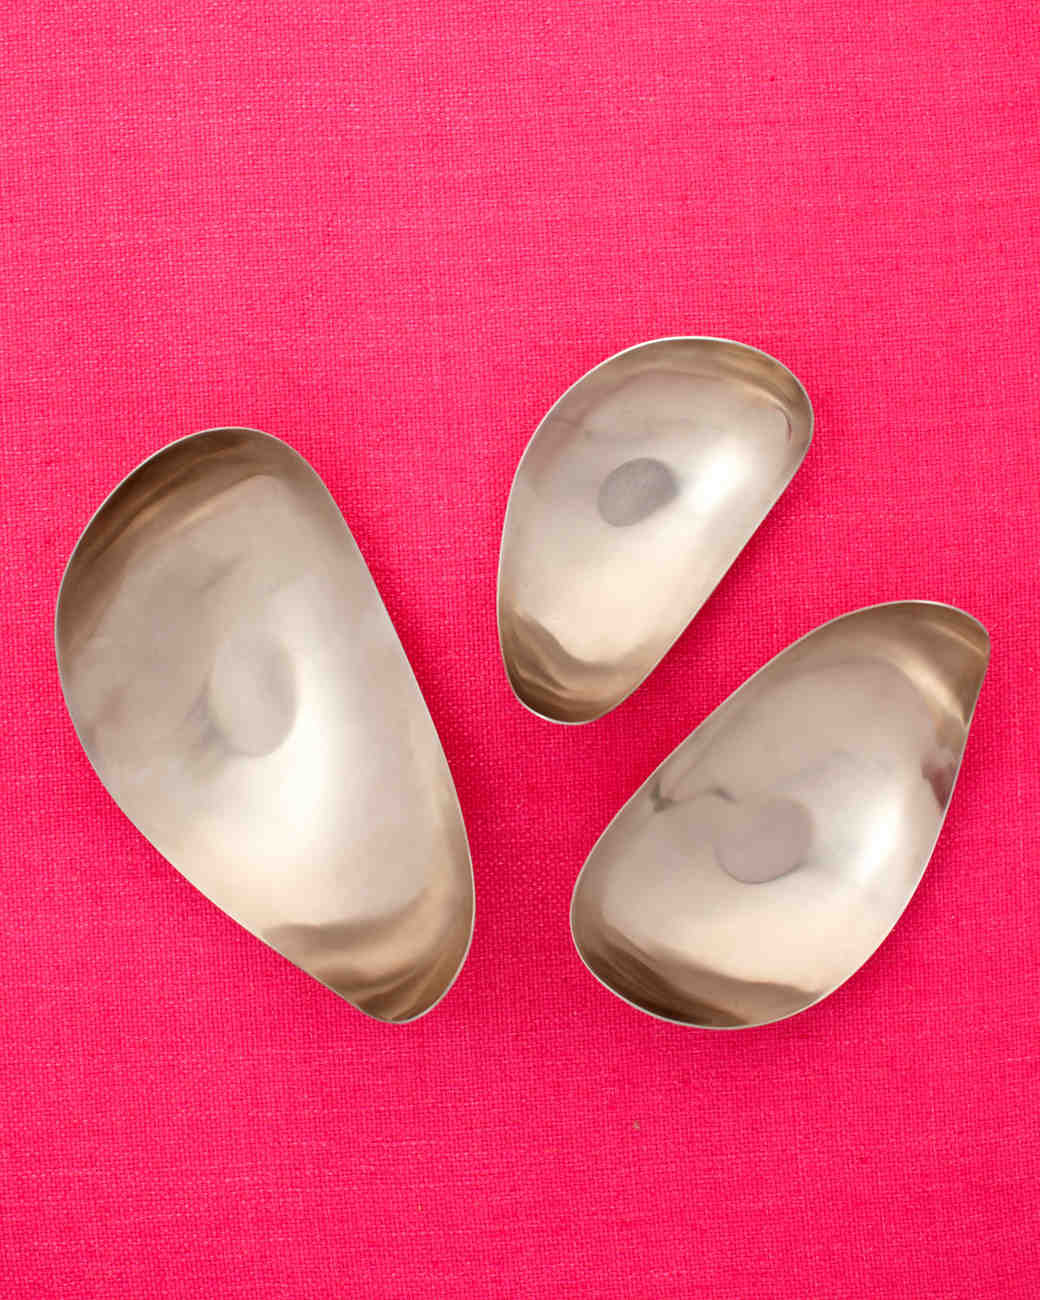 silver-ovals-wd107851.jpg